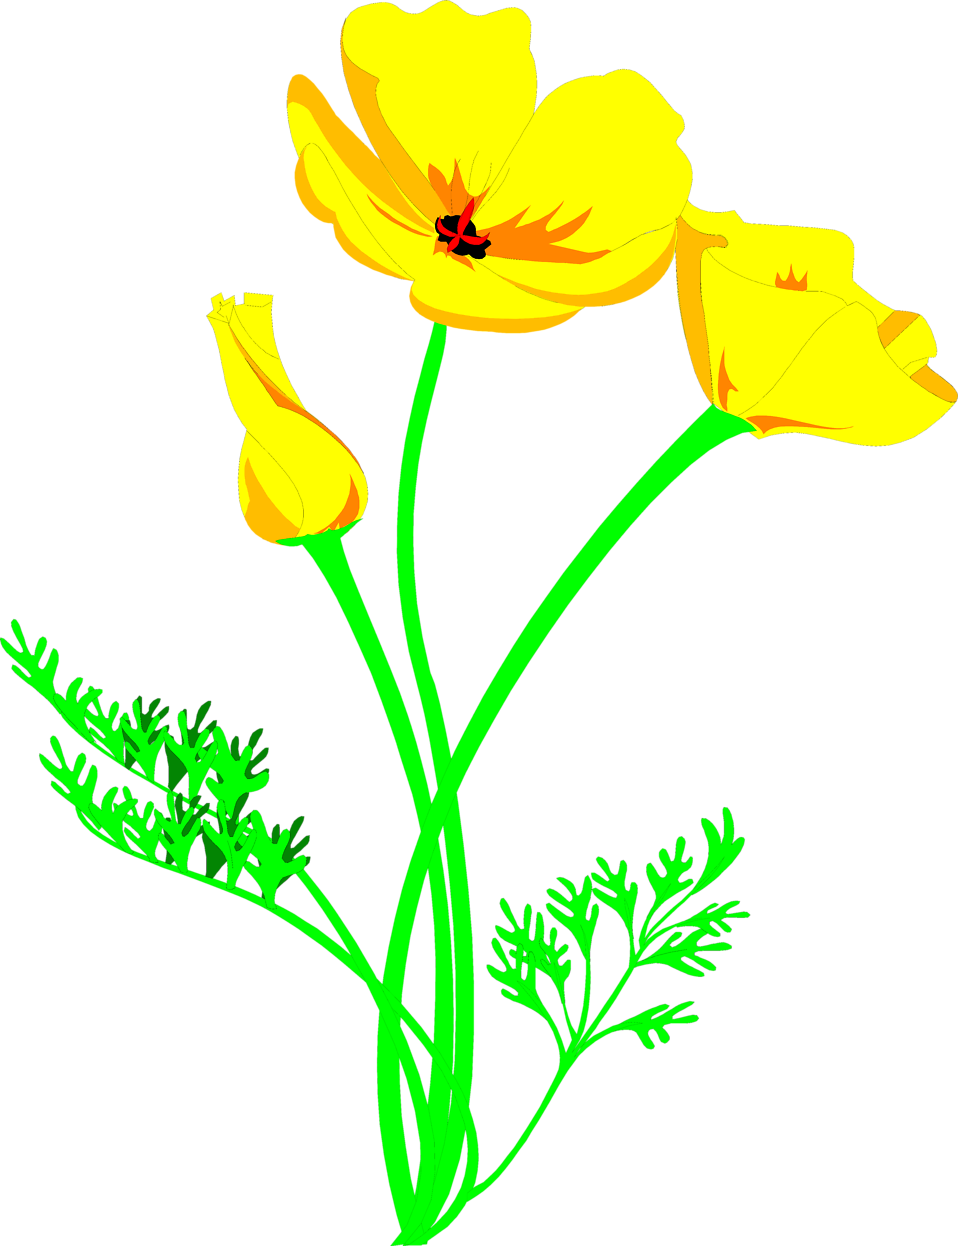 Free images of poppies. Poppy clipart poppy field